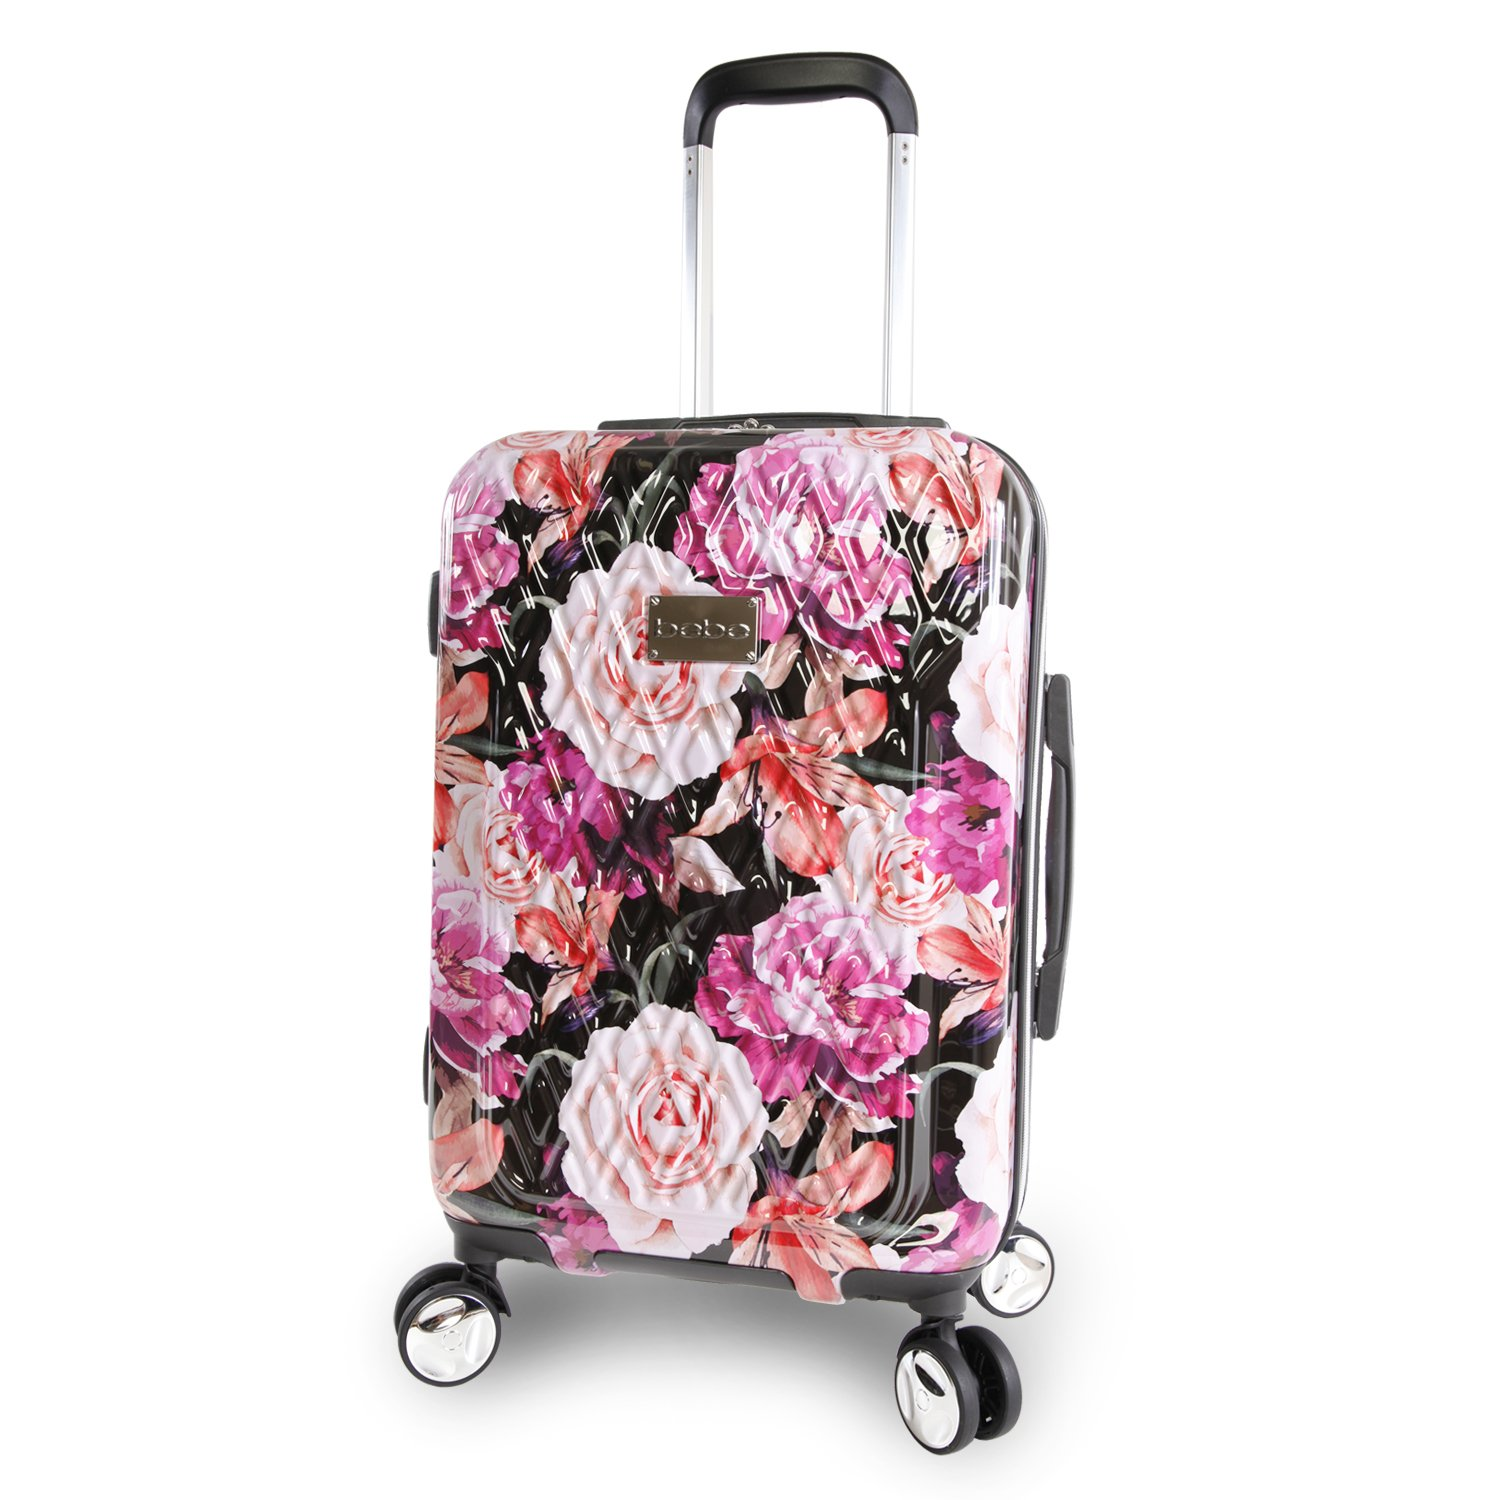 Bebe Women's Marie 21 Hardside Carry-on Spinner Luggage, Black Floral Print BeBe Luggage BE-PC-7121